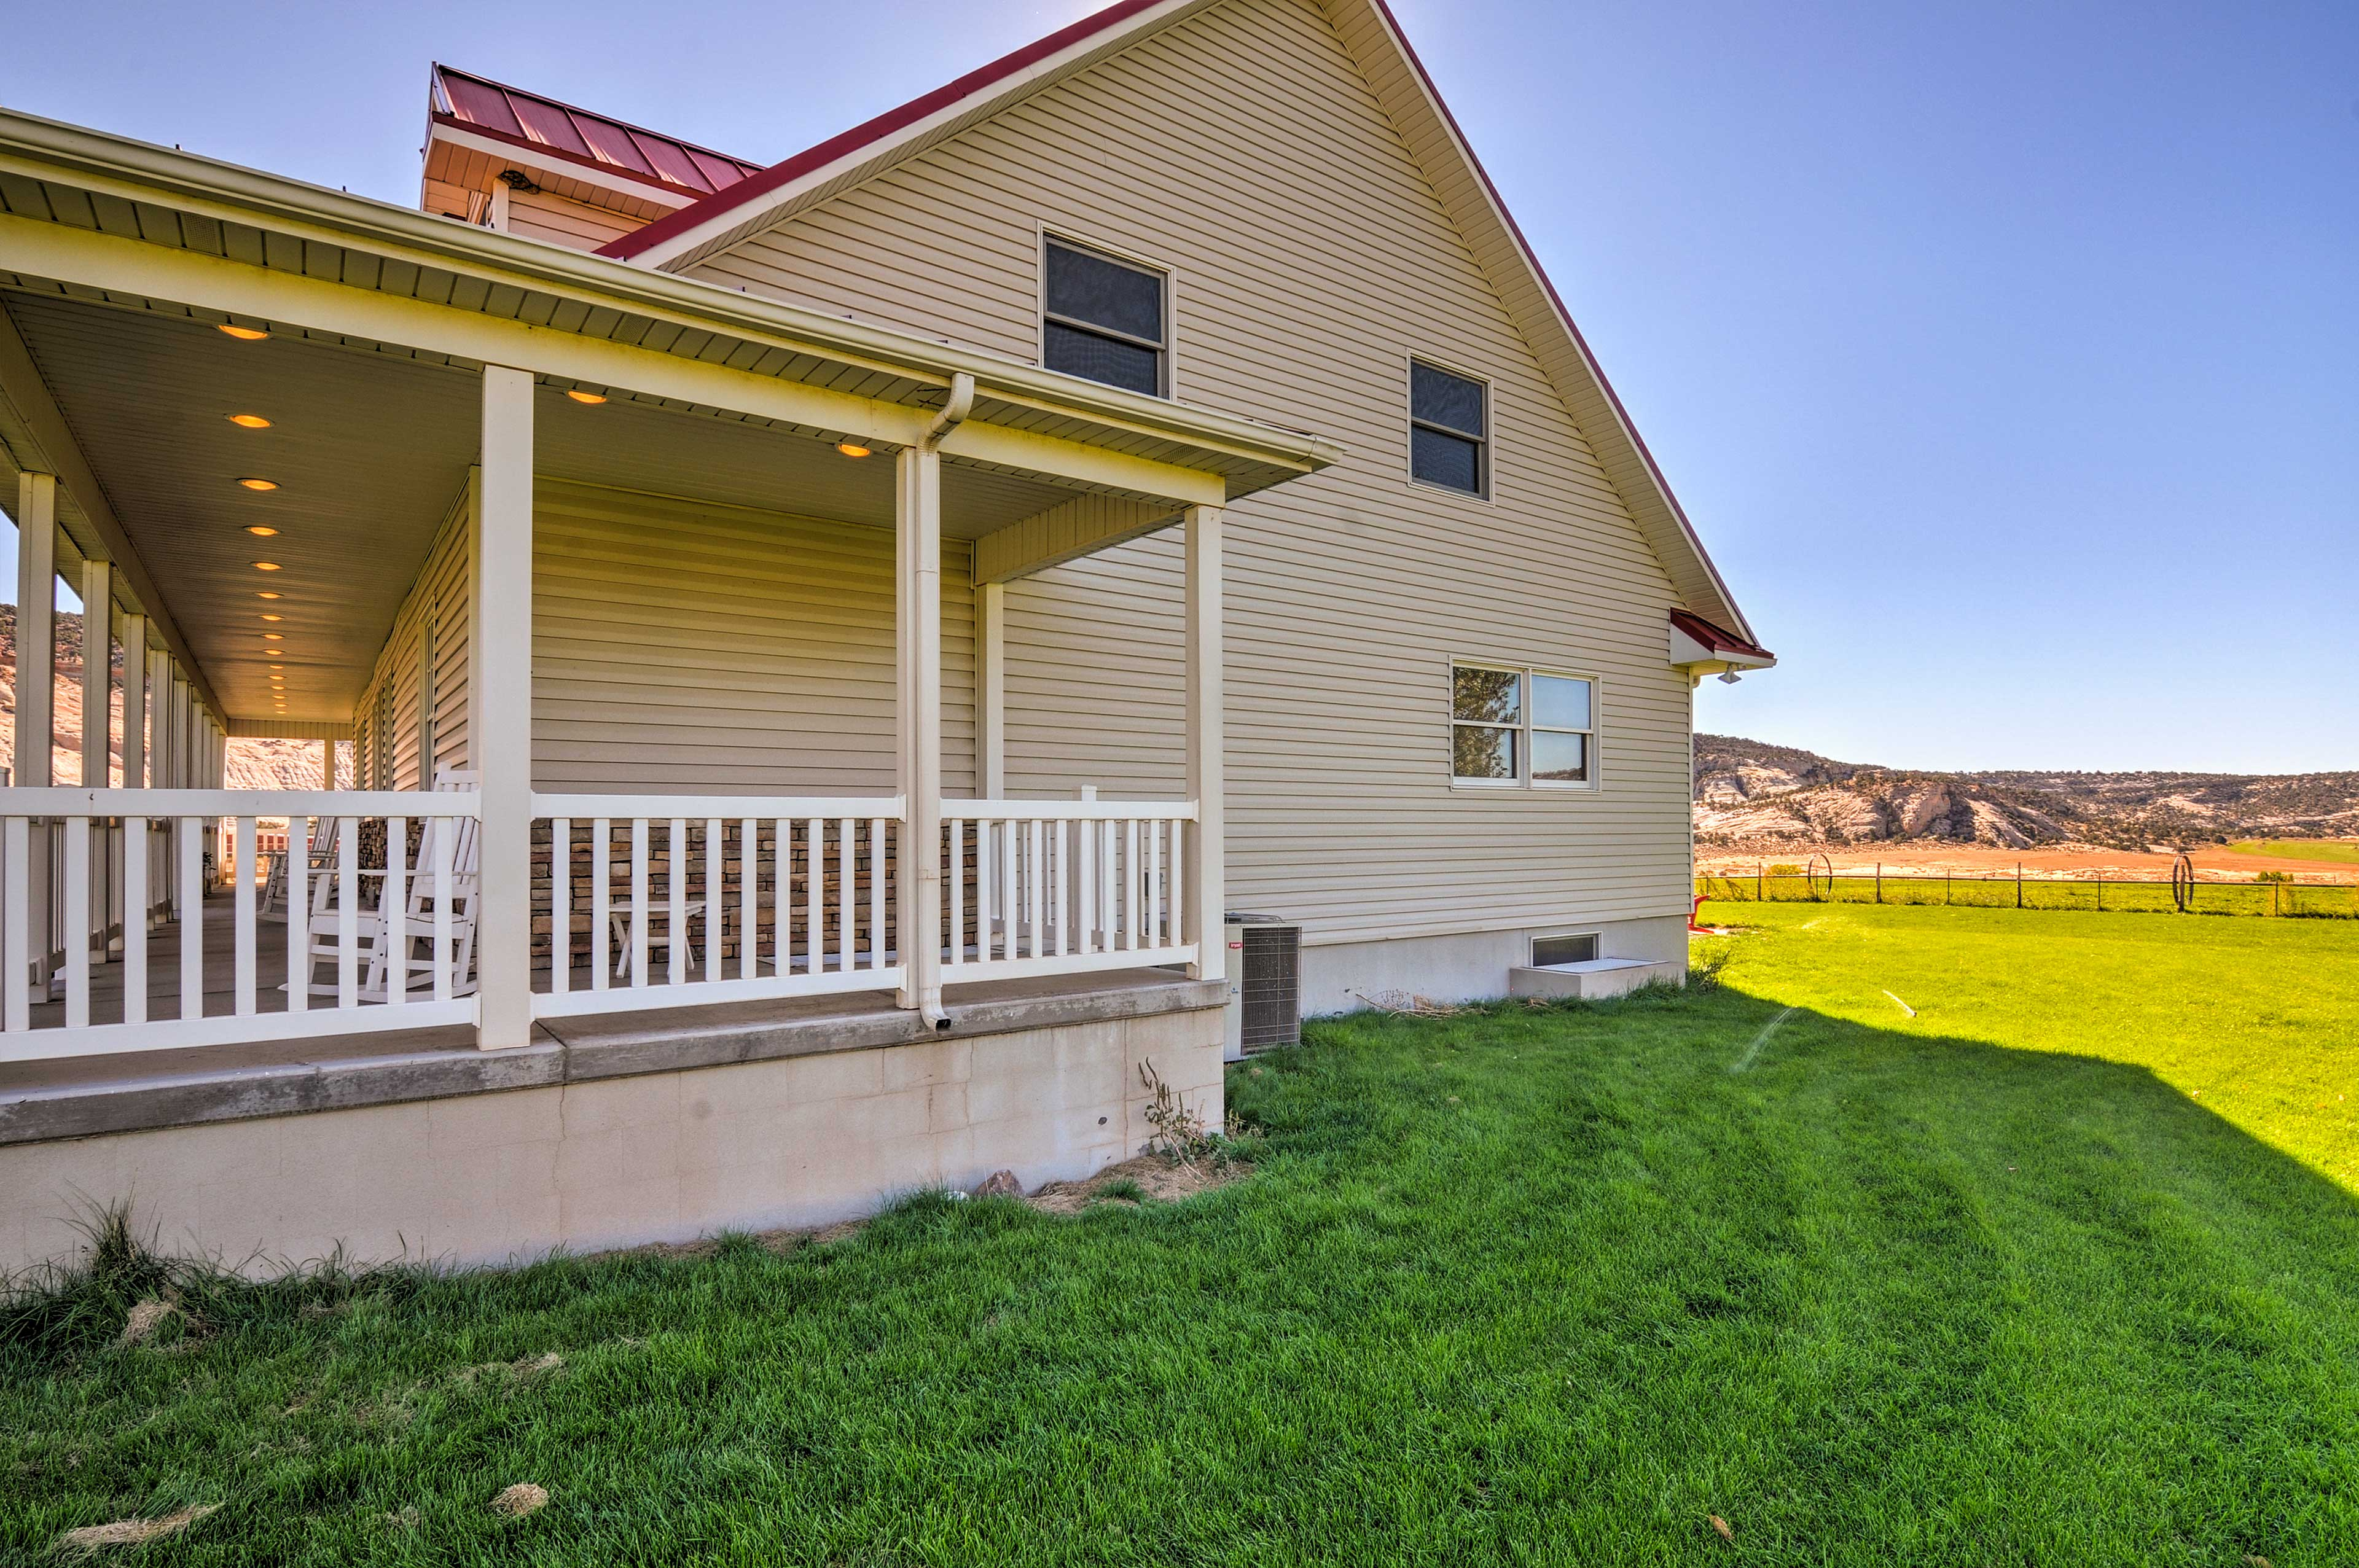 The vacation rental home sits on Sugarloaf Valley Farms's 570-acre farm.